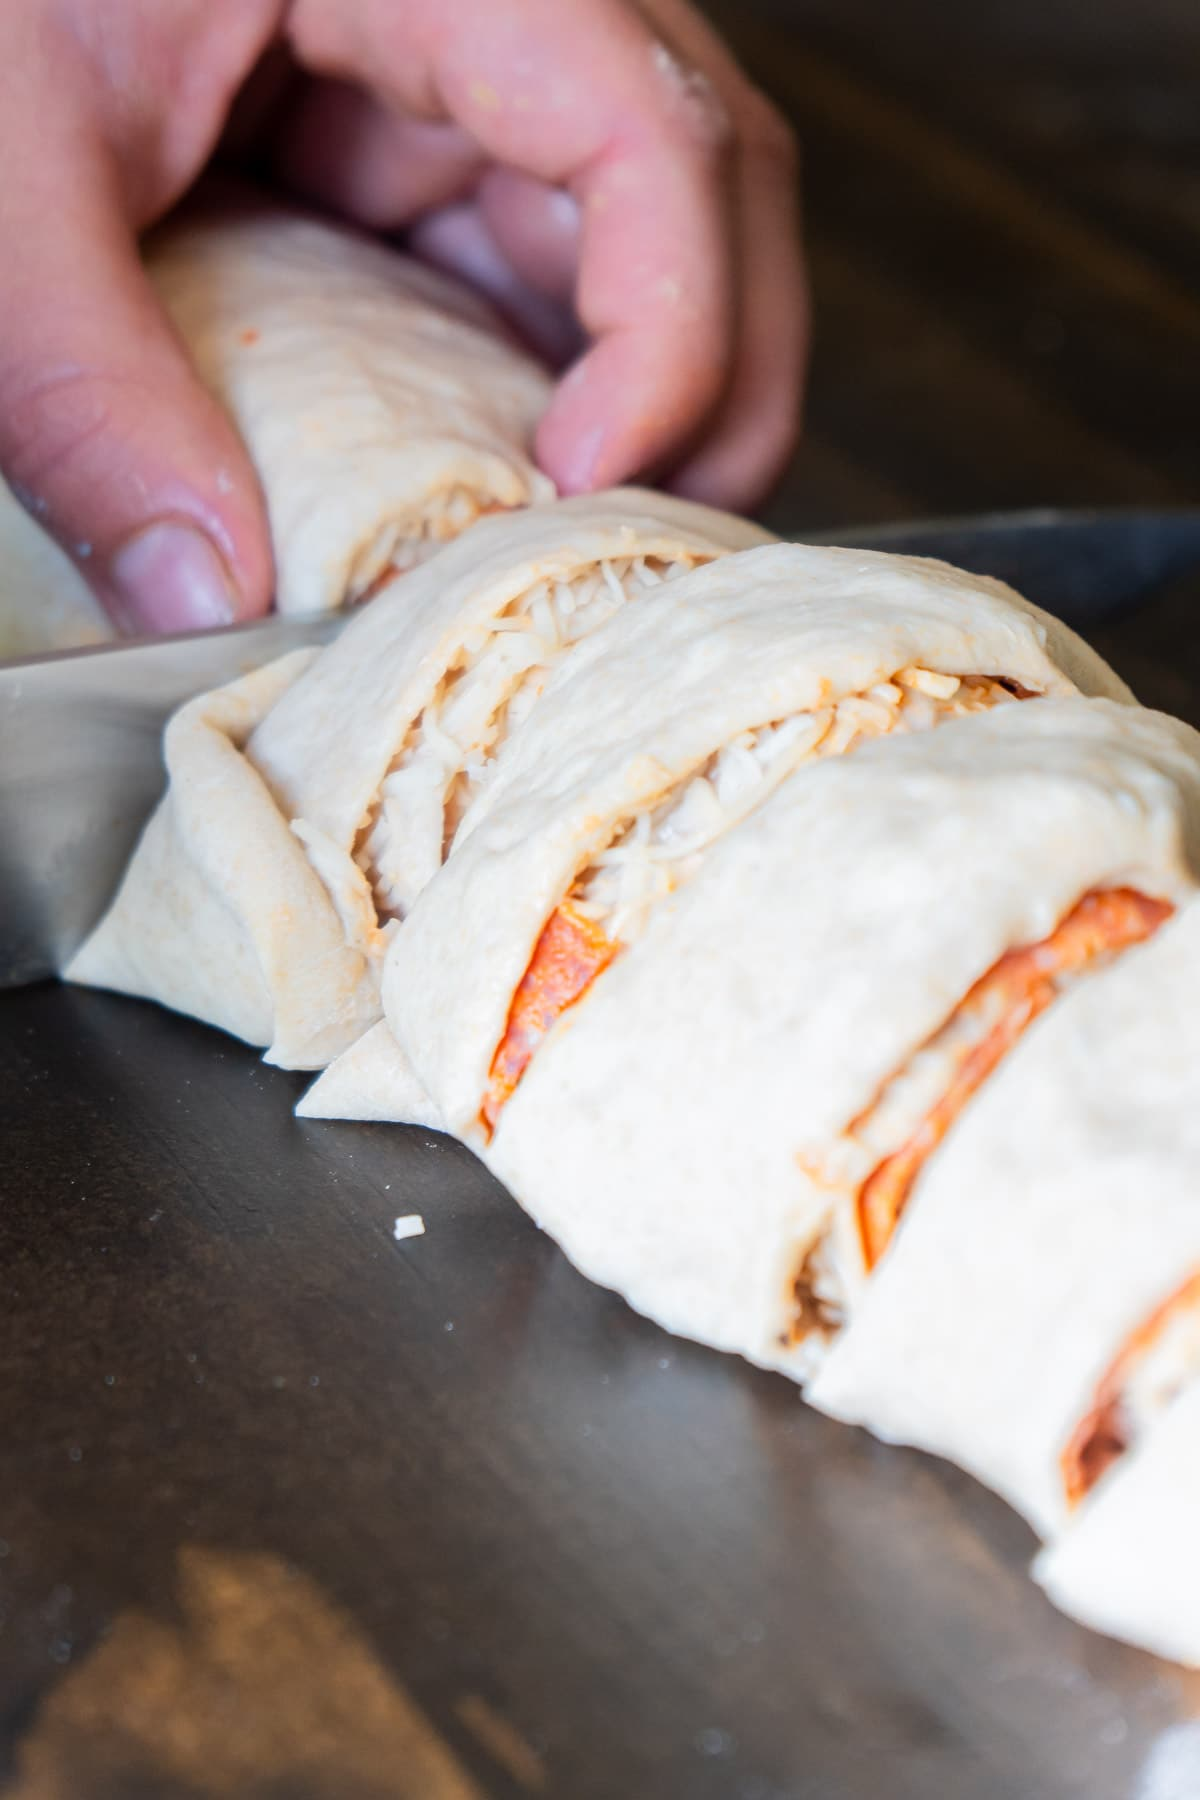 Woman cutting pepperoni rolls into pieces with large knife